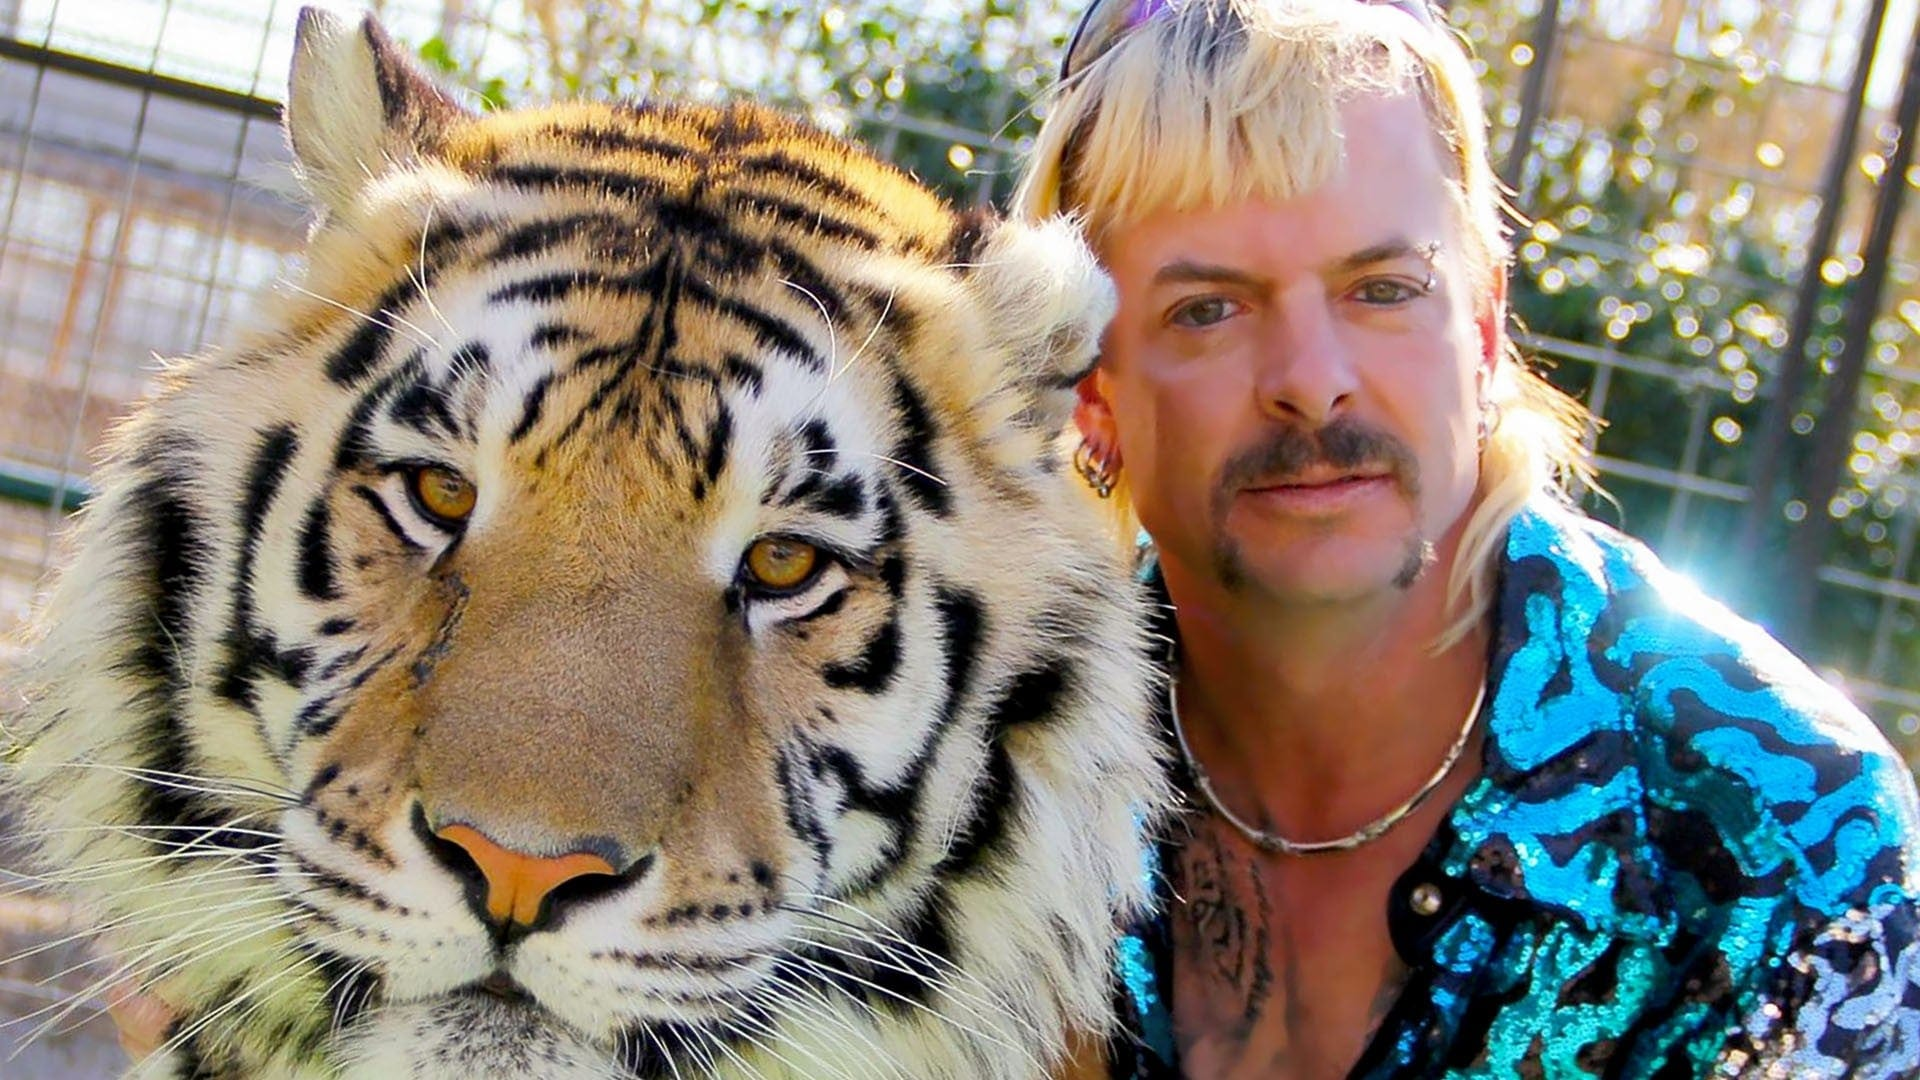 Tiger King: Donald Trump non ha concesso la grazia a Joe Exotic